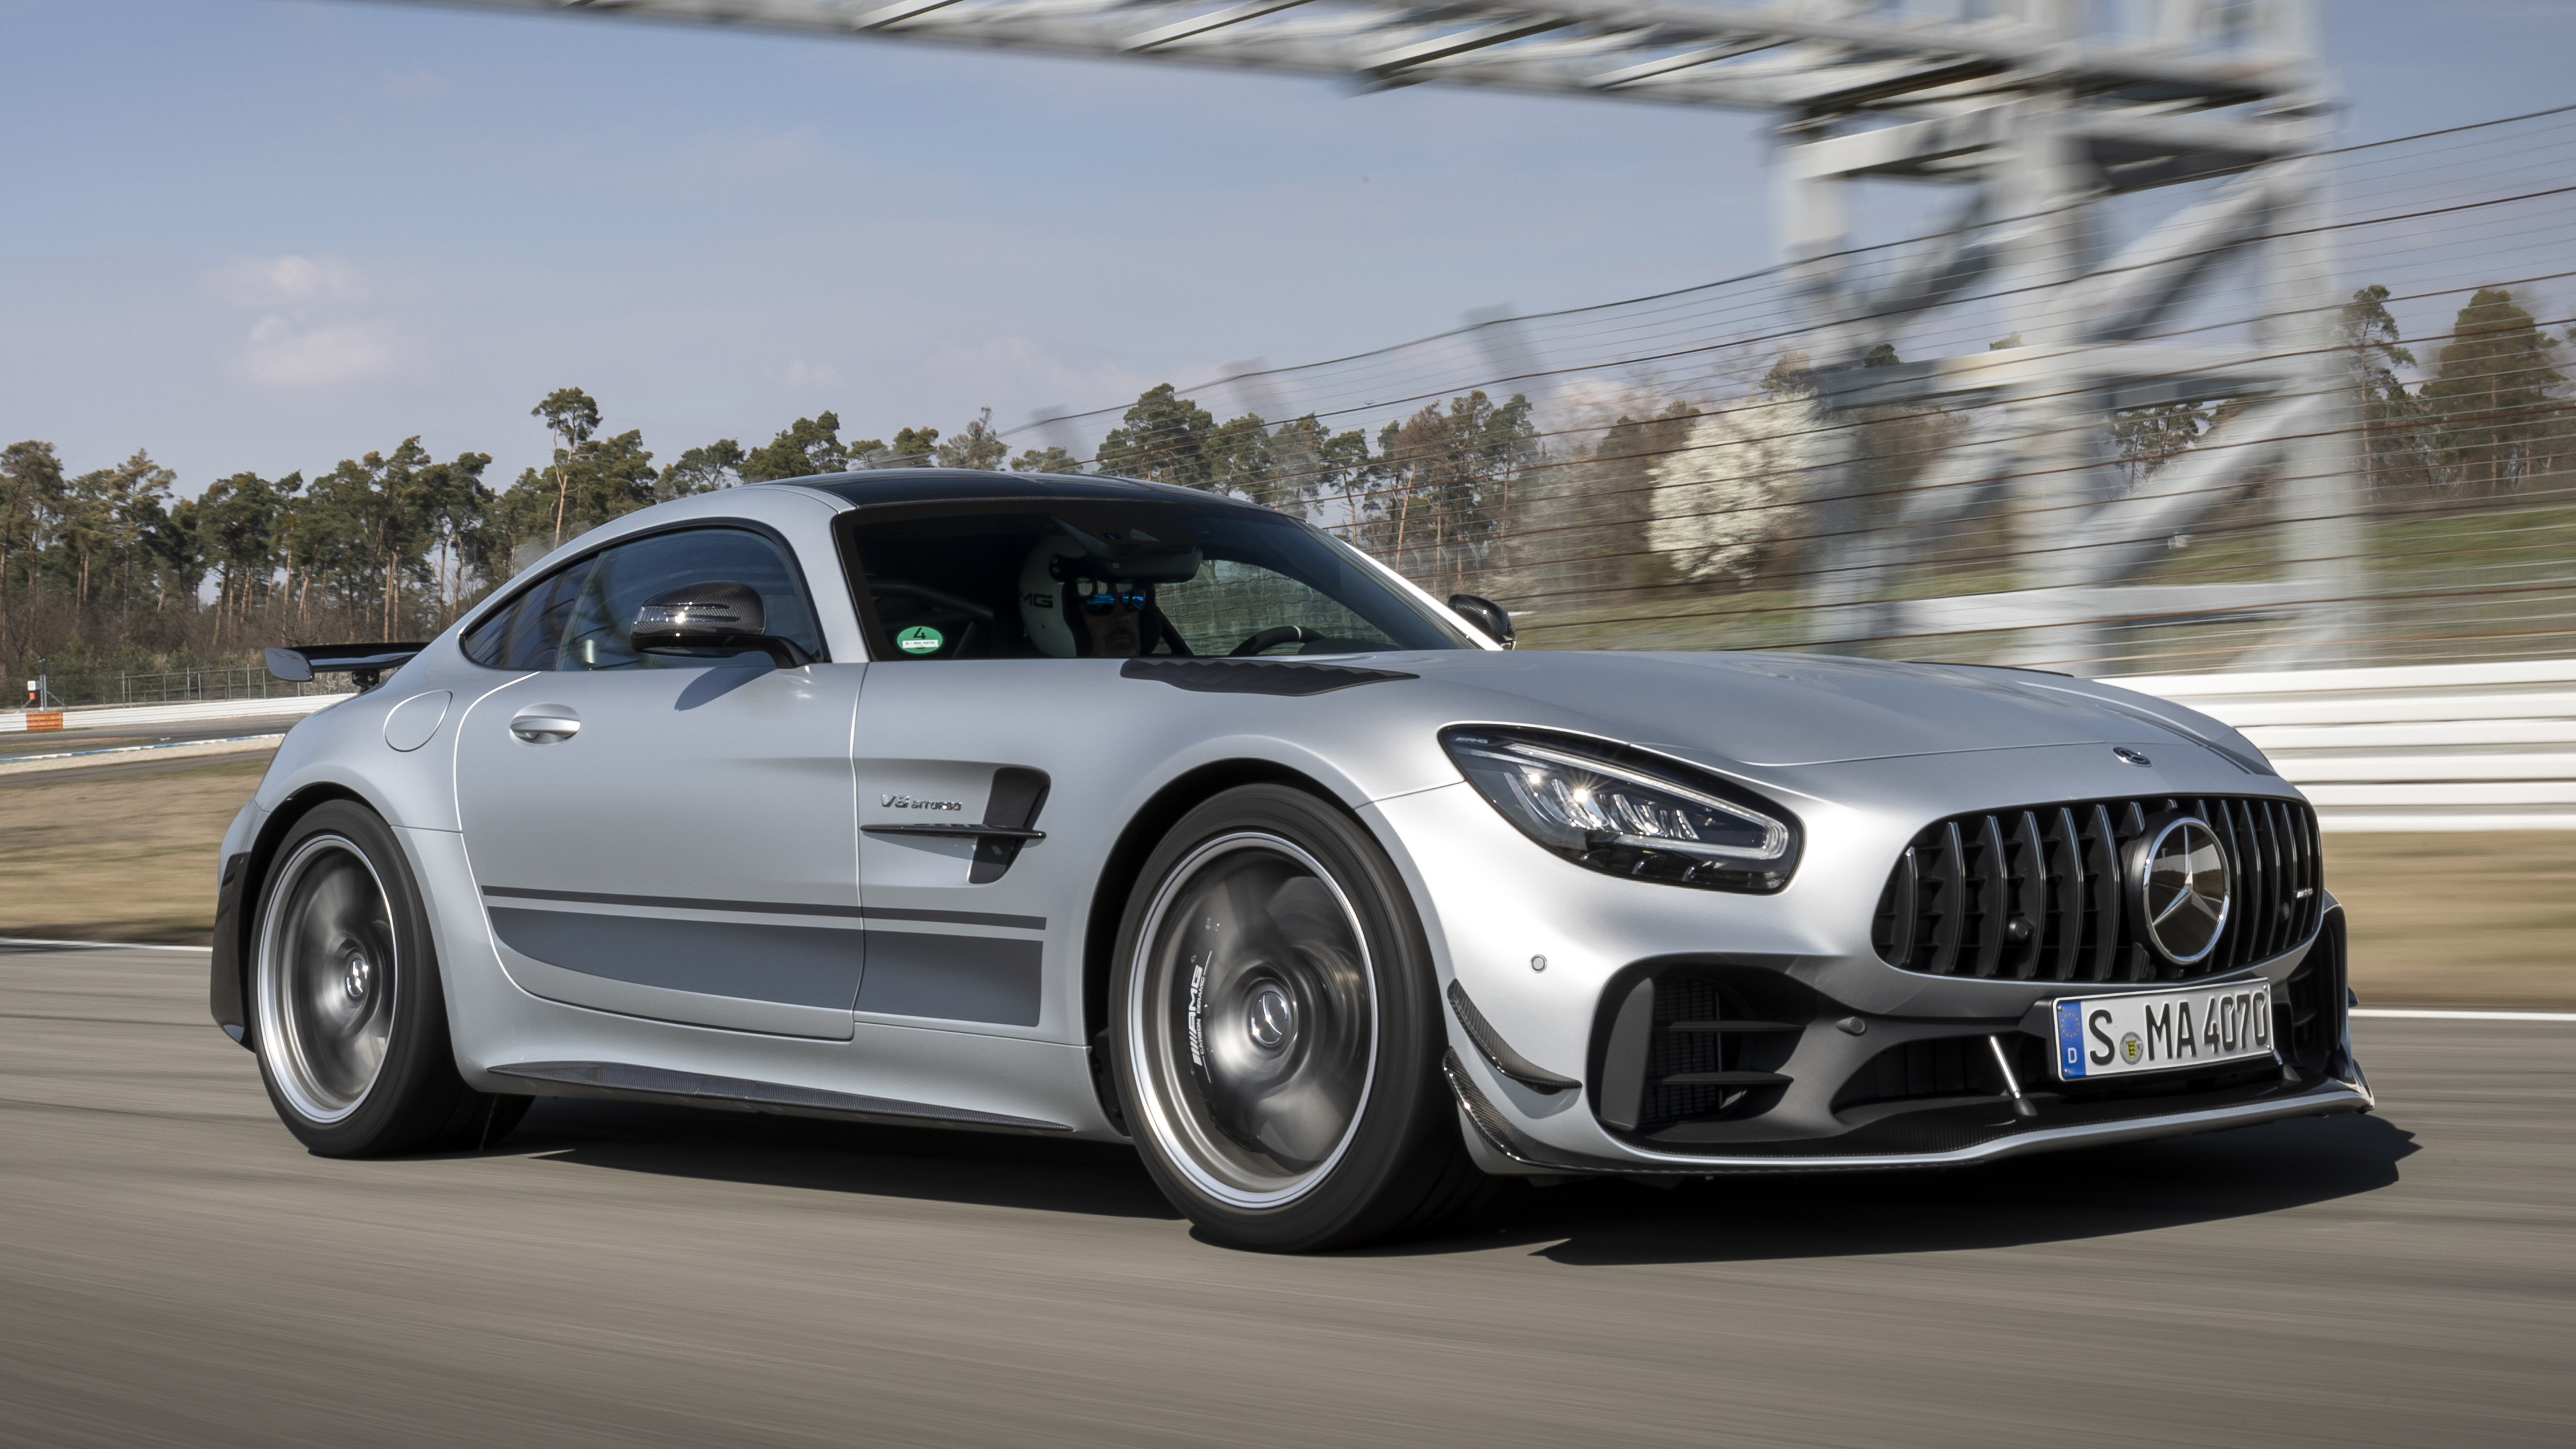 Mercedes Certified Pre Owned >> 2020 Mercedes-AMG GT R Pro pricing announced | Autoblog